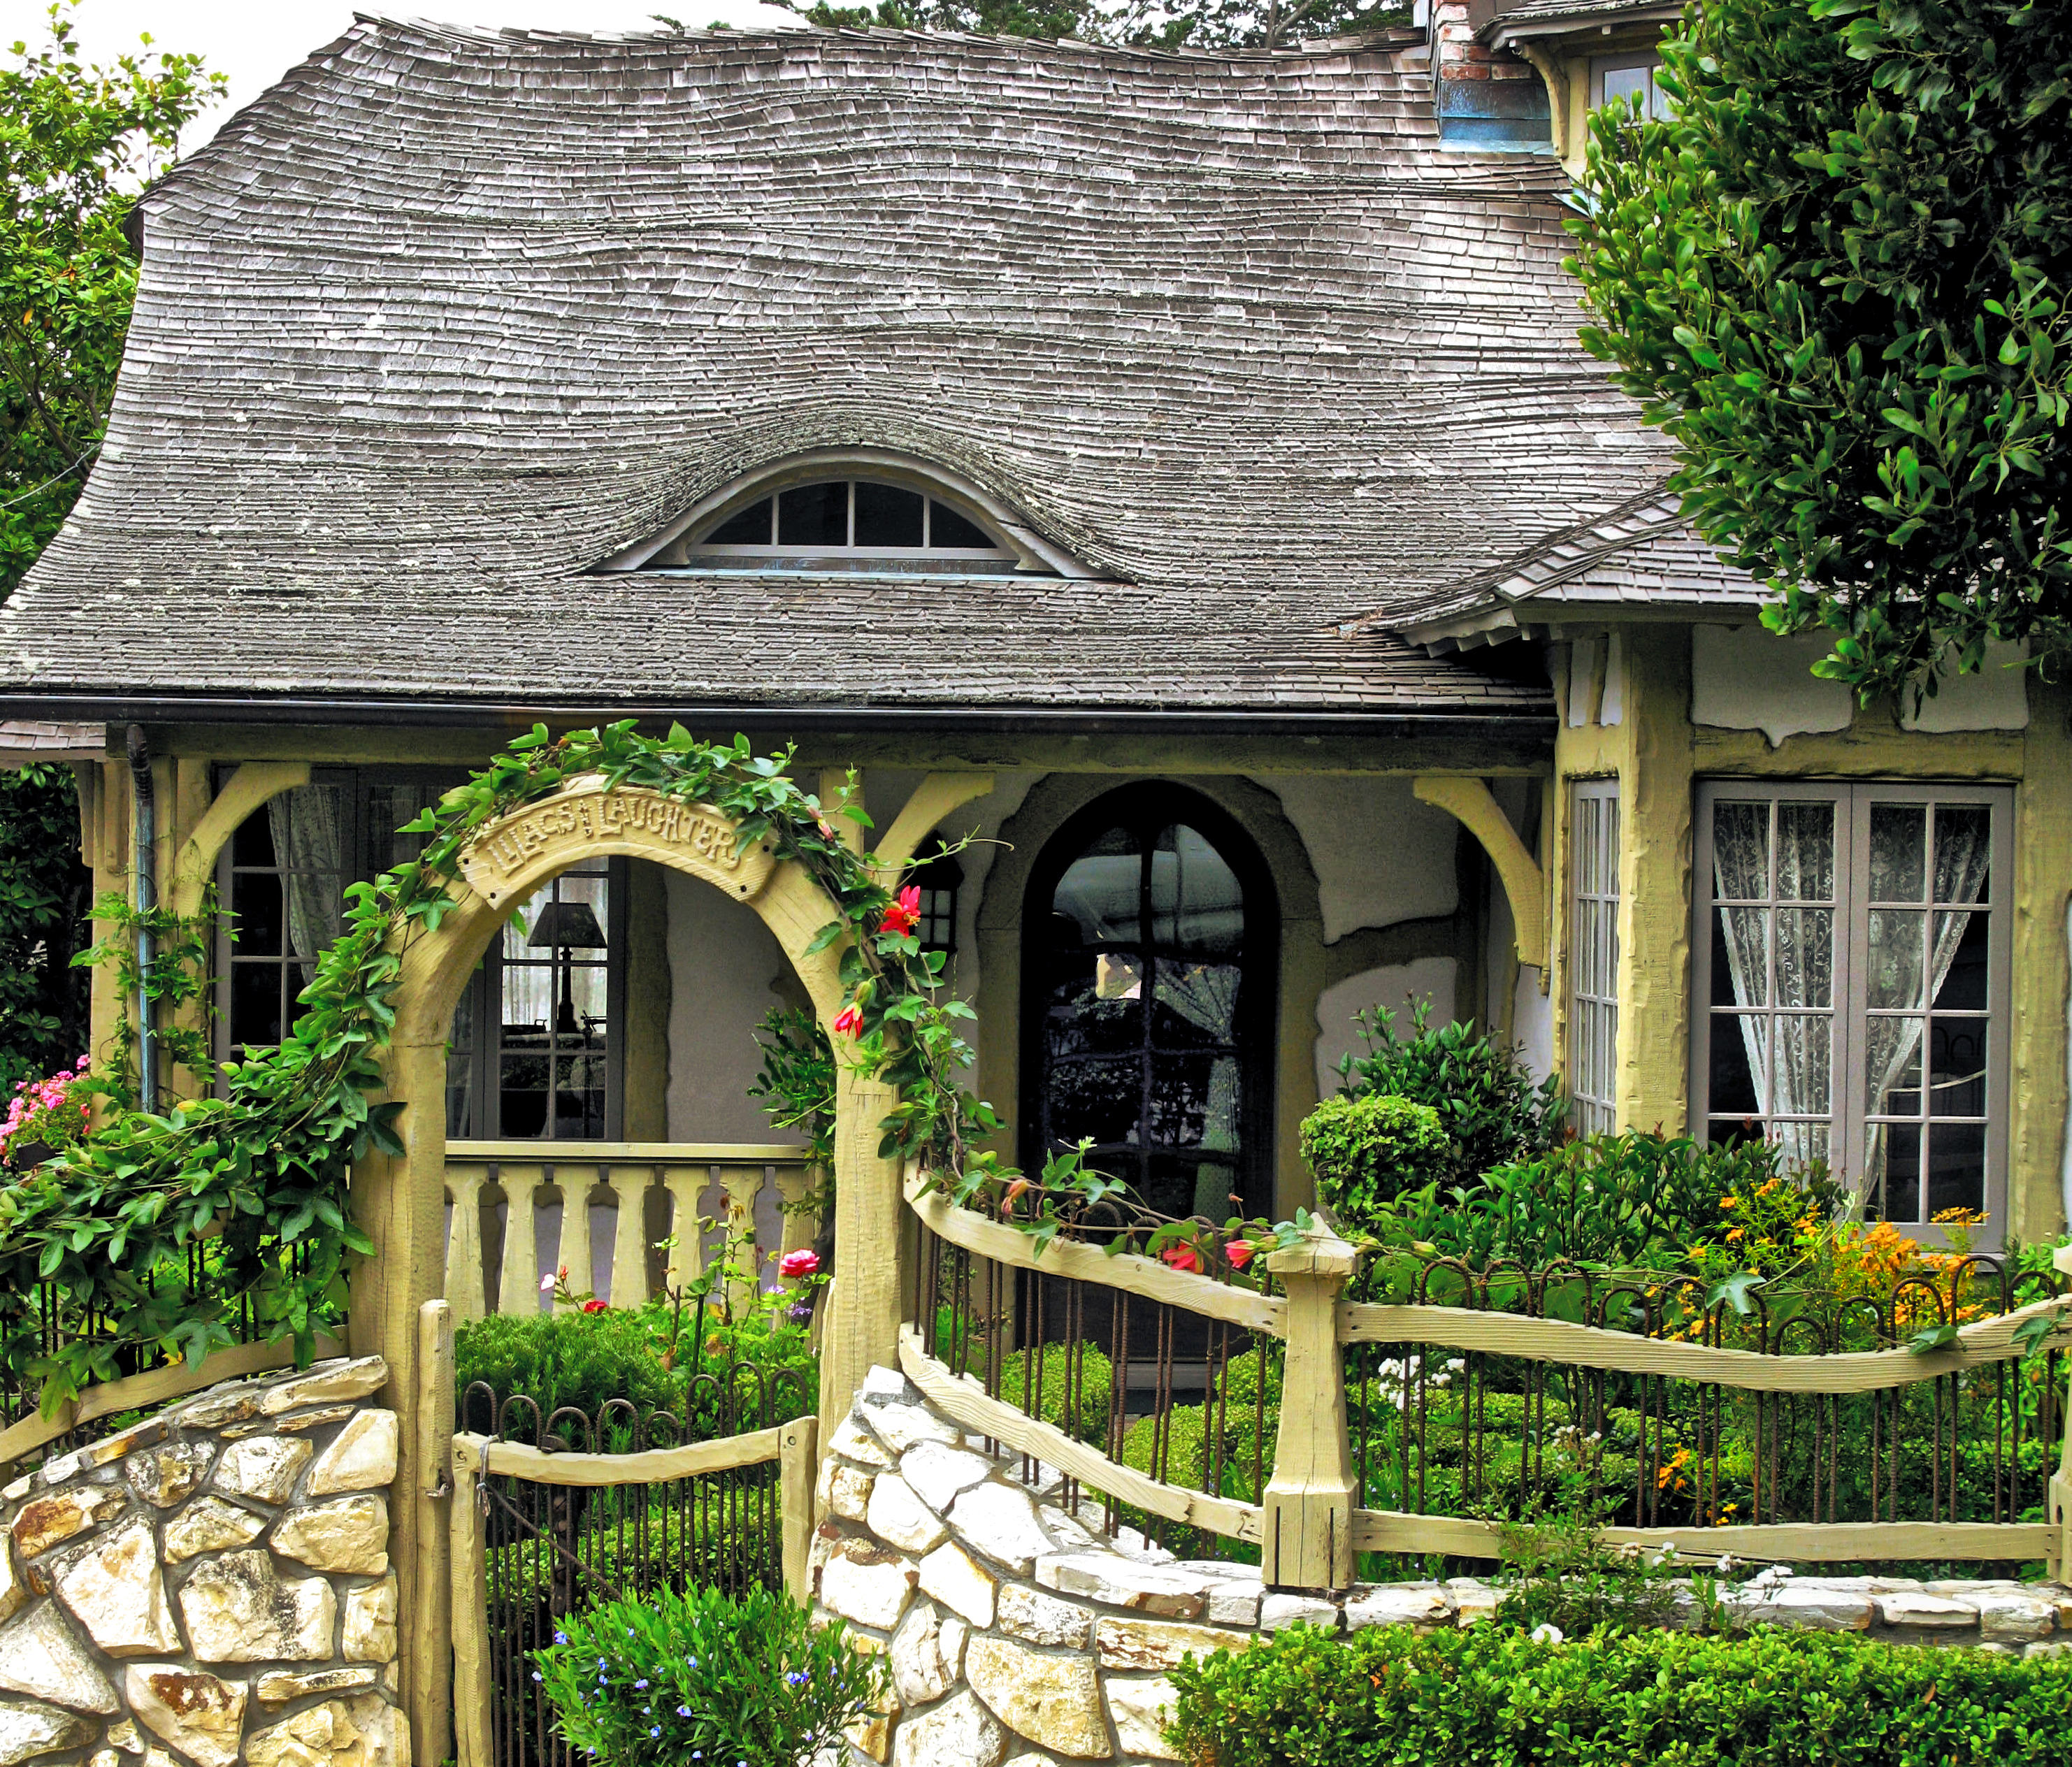 WHAT THE HECK IS A FAIRYTALE COTTAGE ANYWAY Once upon a time